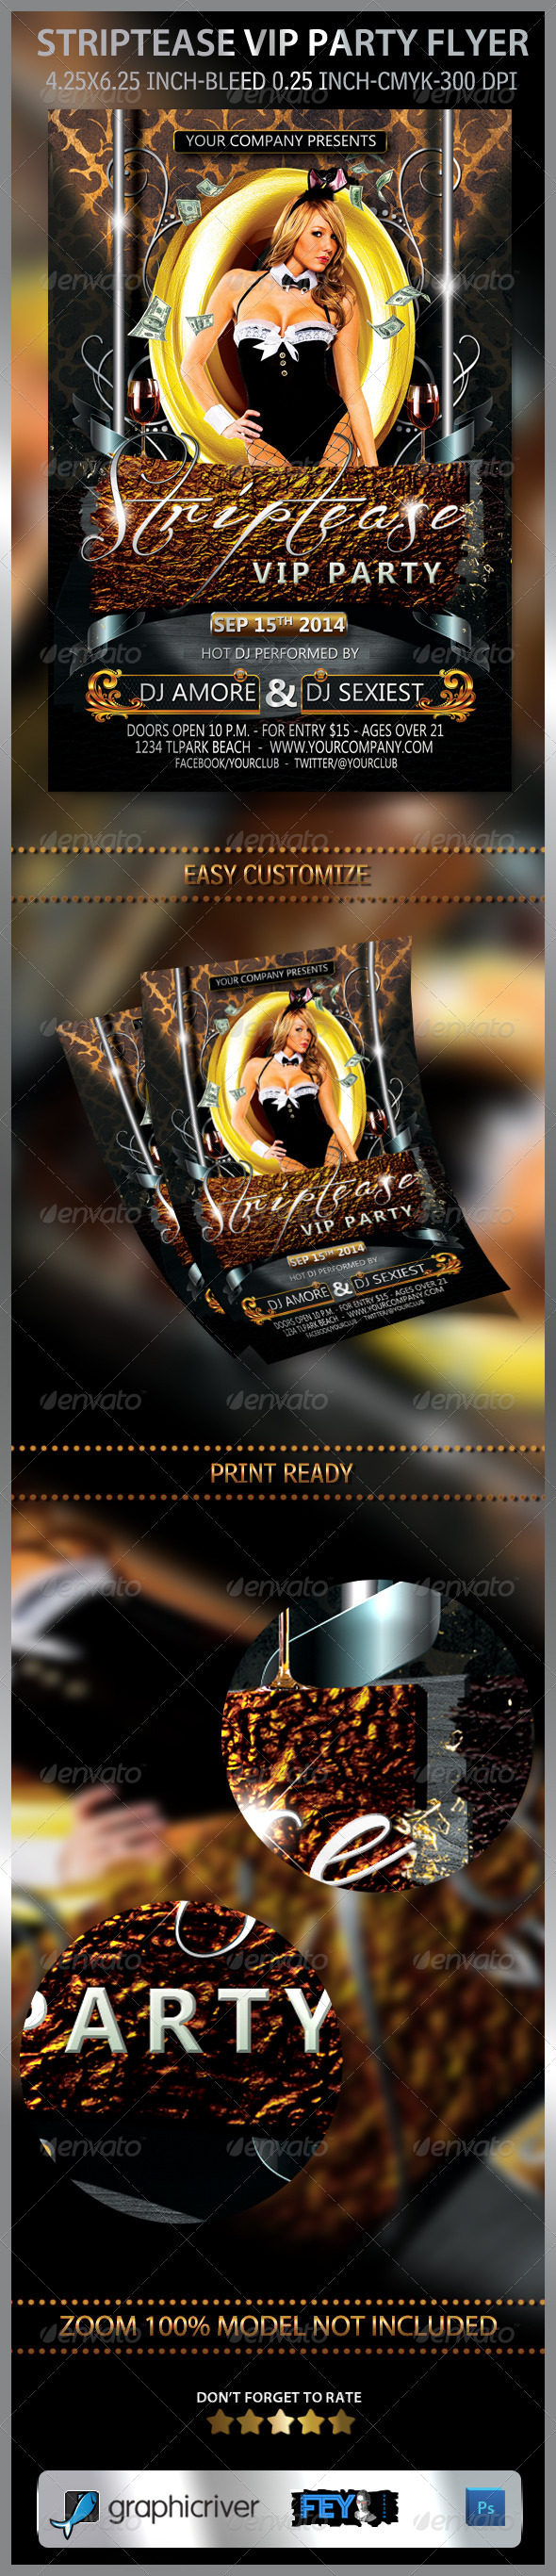 Striptease VIP Party Flyer - Clubs & Parties Events